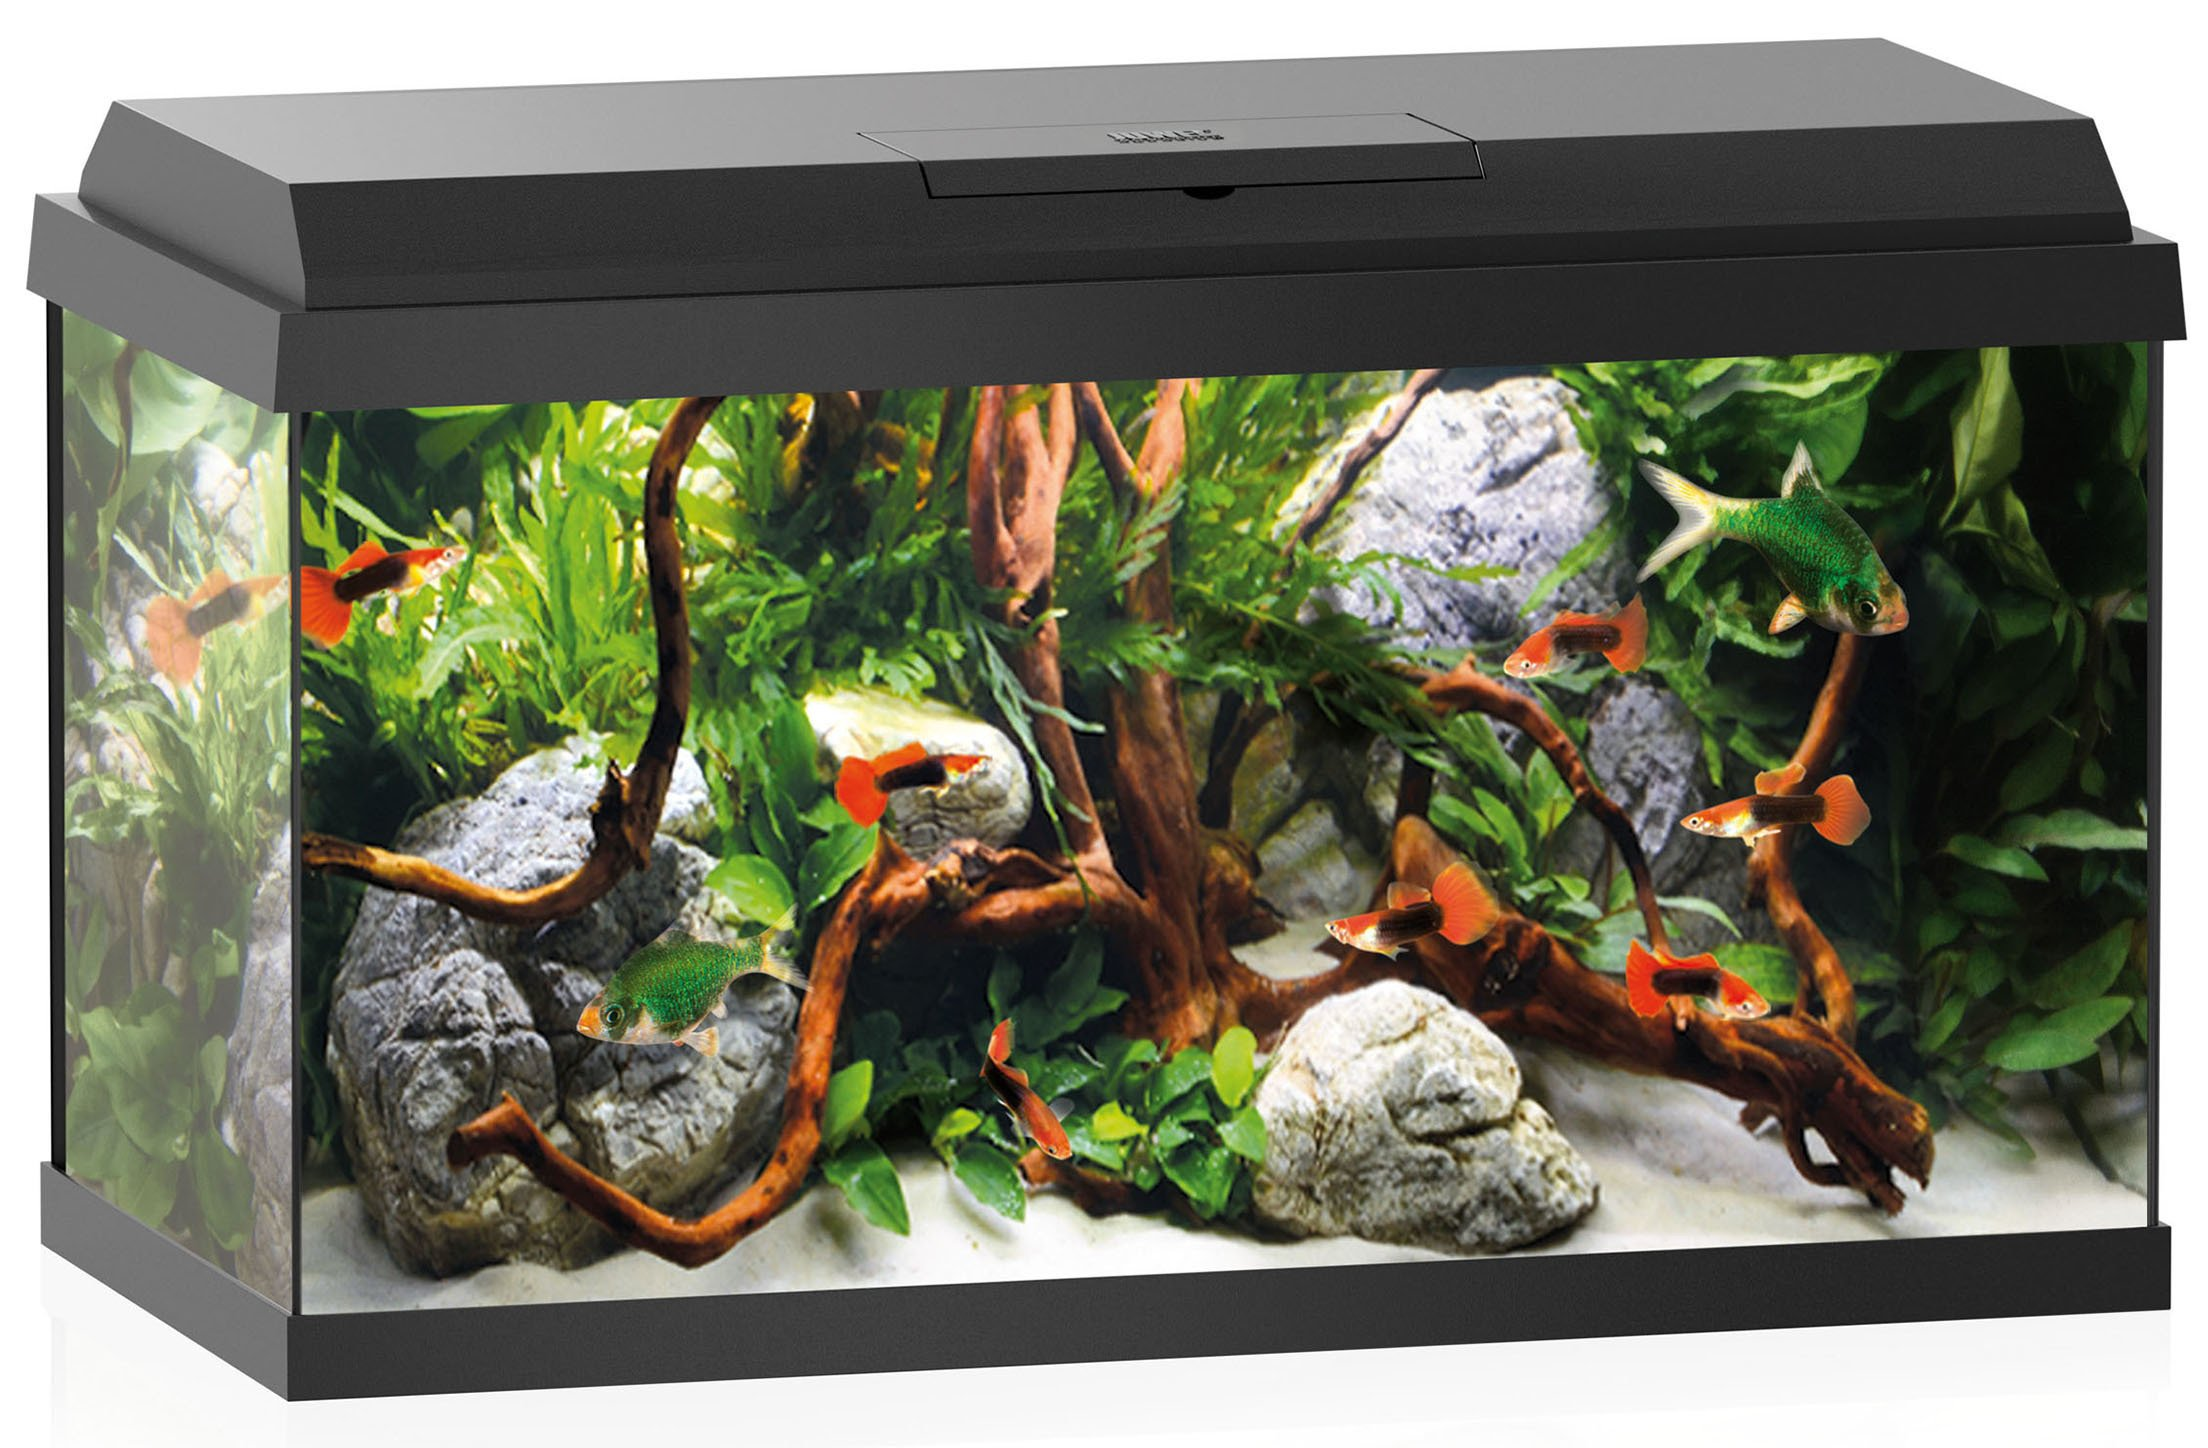 Juwel Primo 60 Led aquarium kopen?   aquarium experts nl   Frank